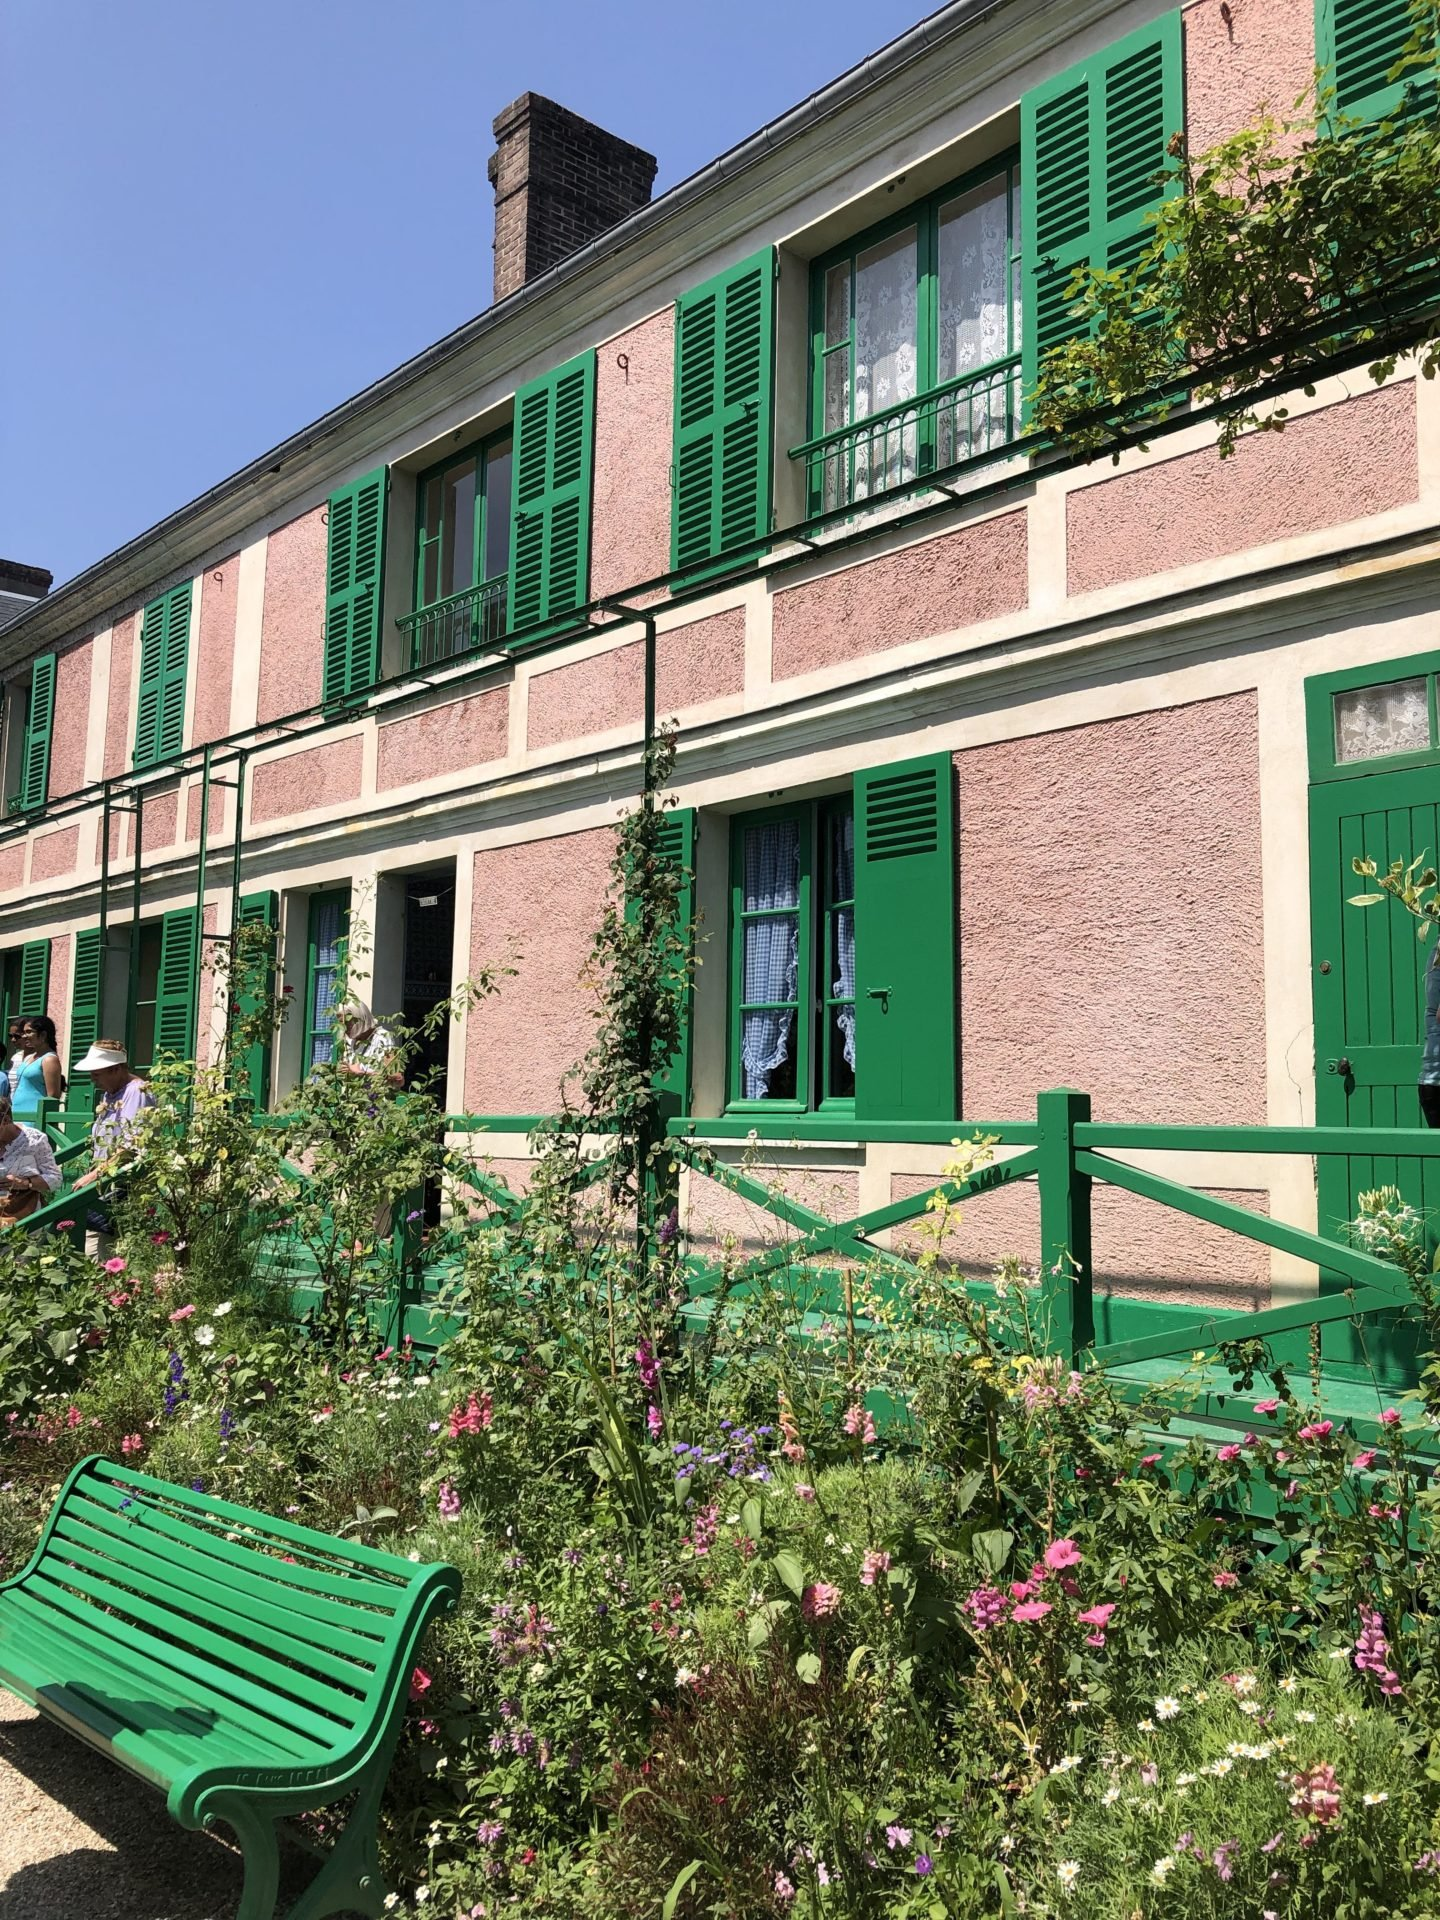 The Monet house in Giverny front veranda painted in pink and green